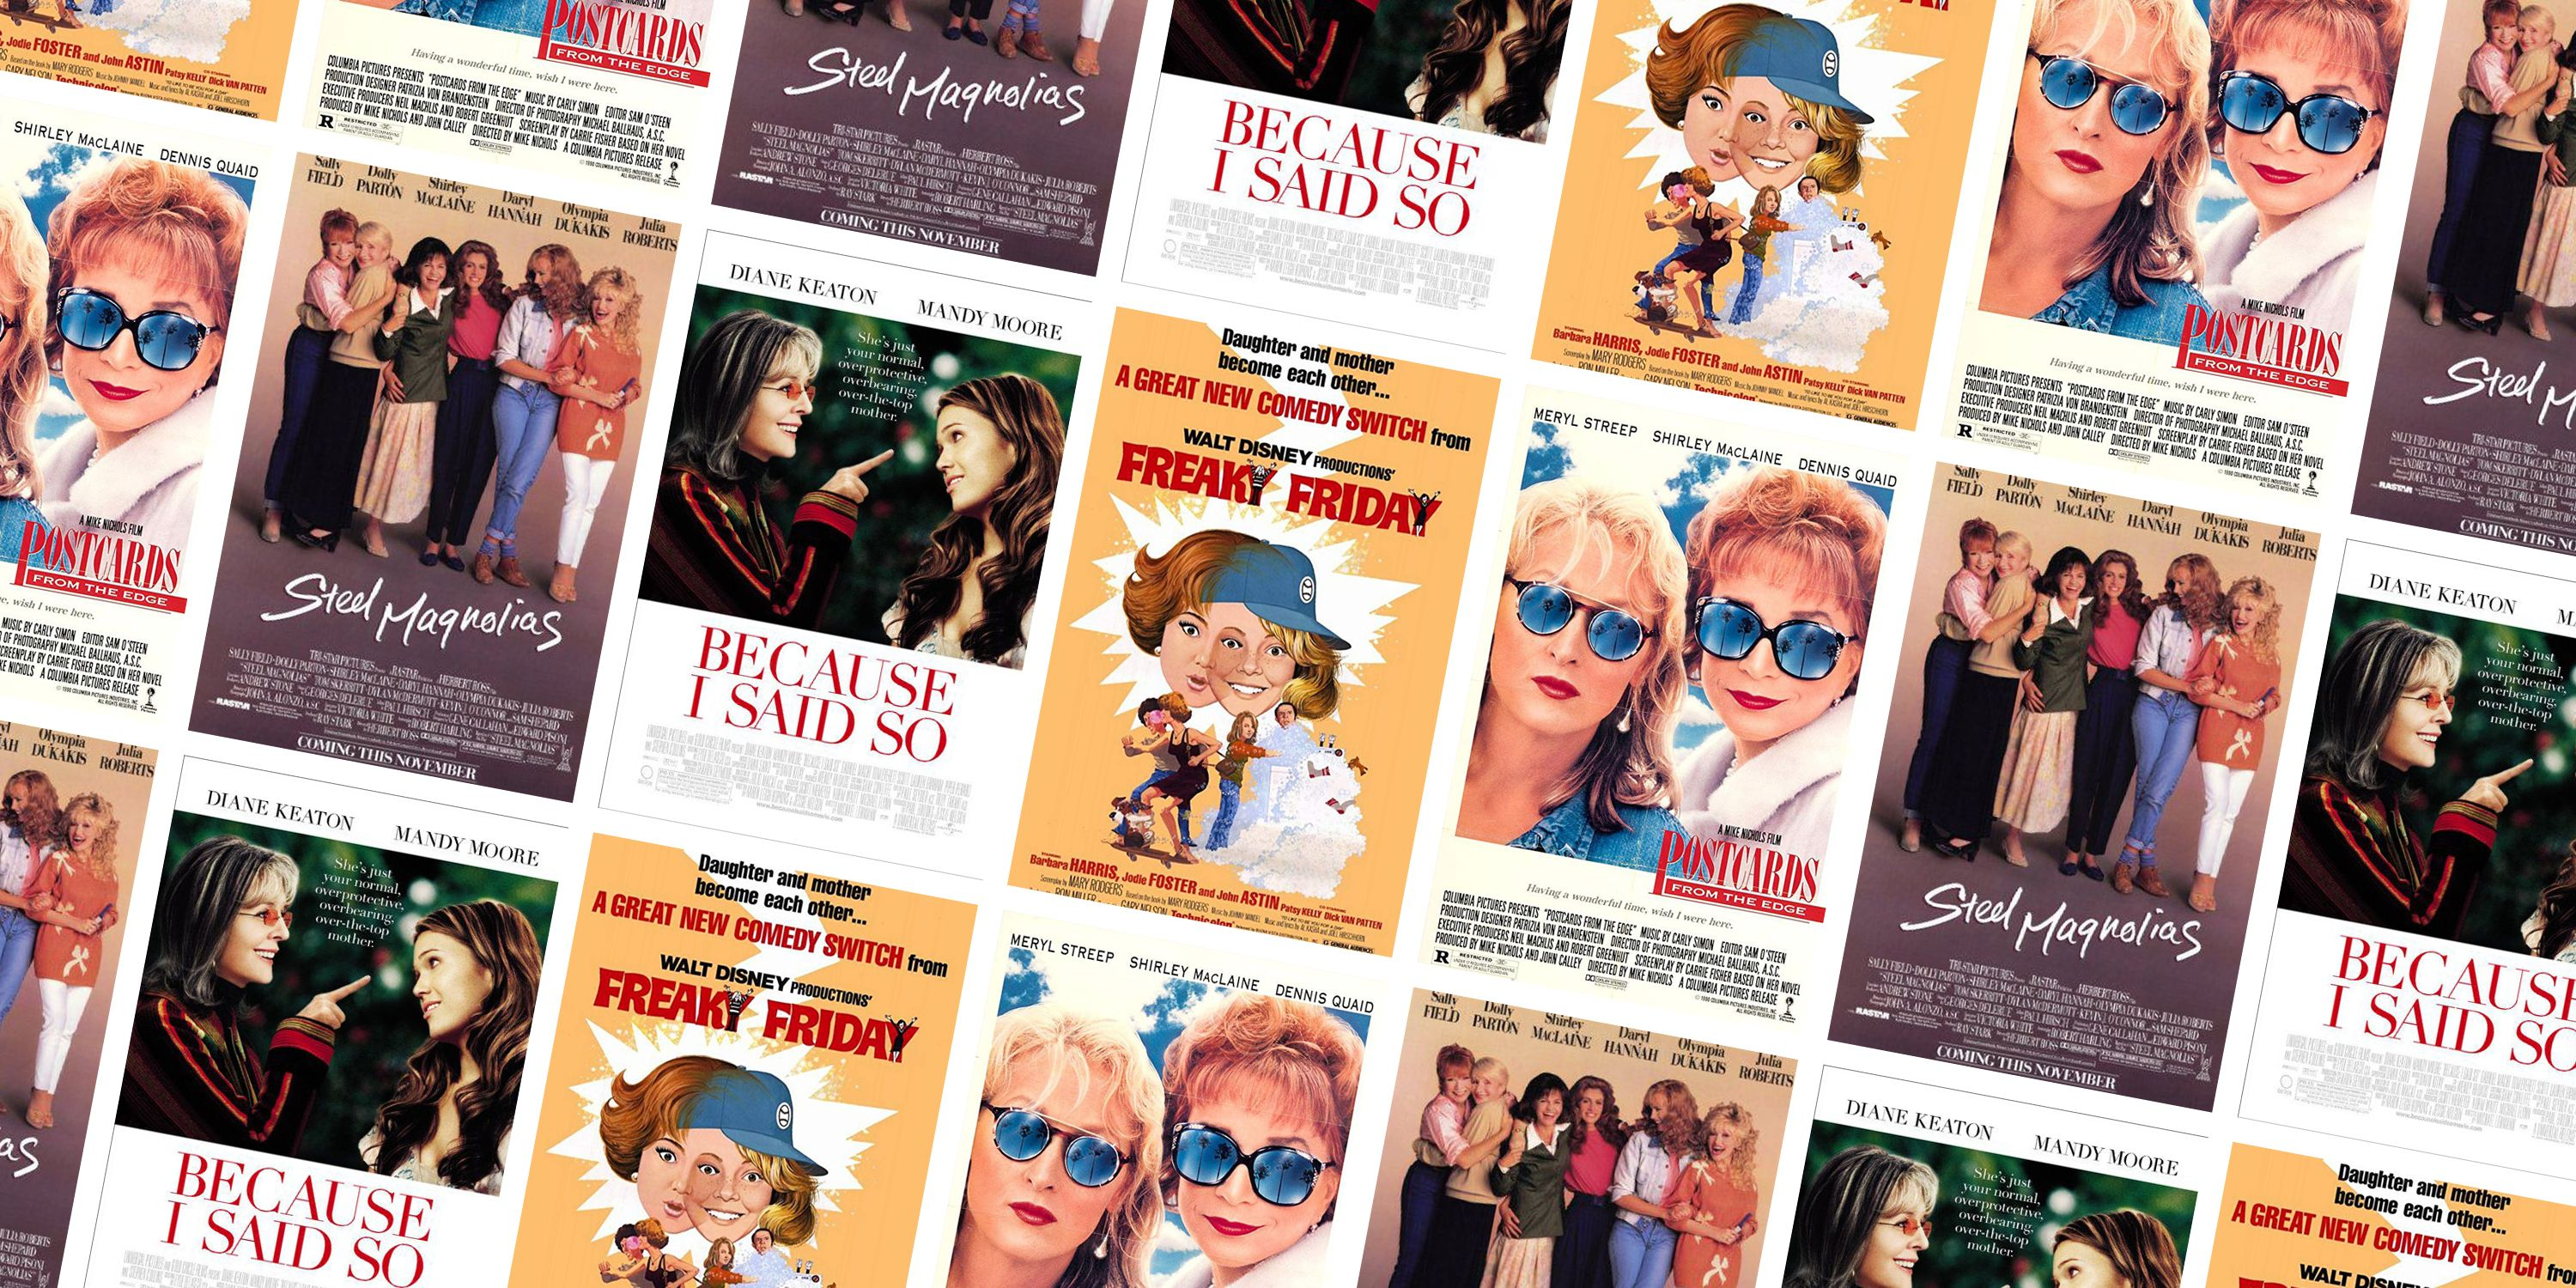 6c495a0cb1211 40+ Mother's Day Movies - The Best Movies to Watch With Mom